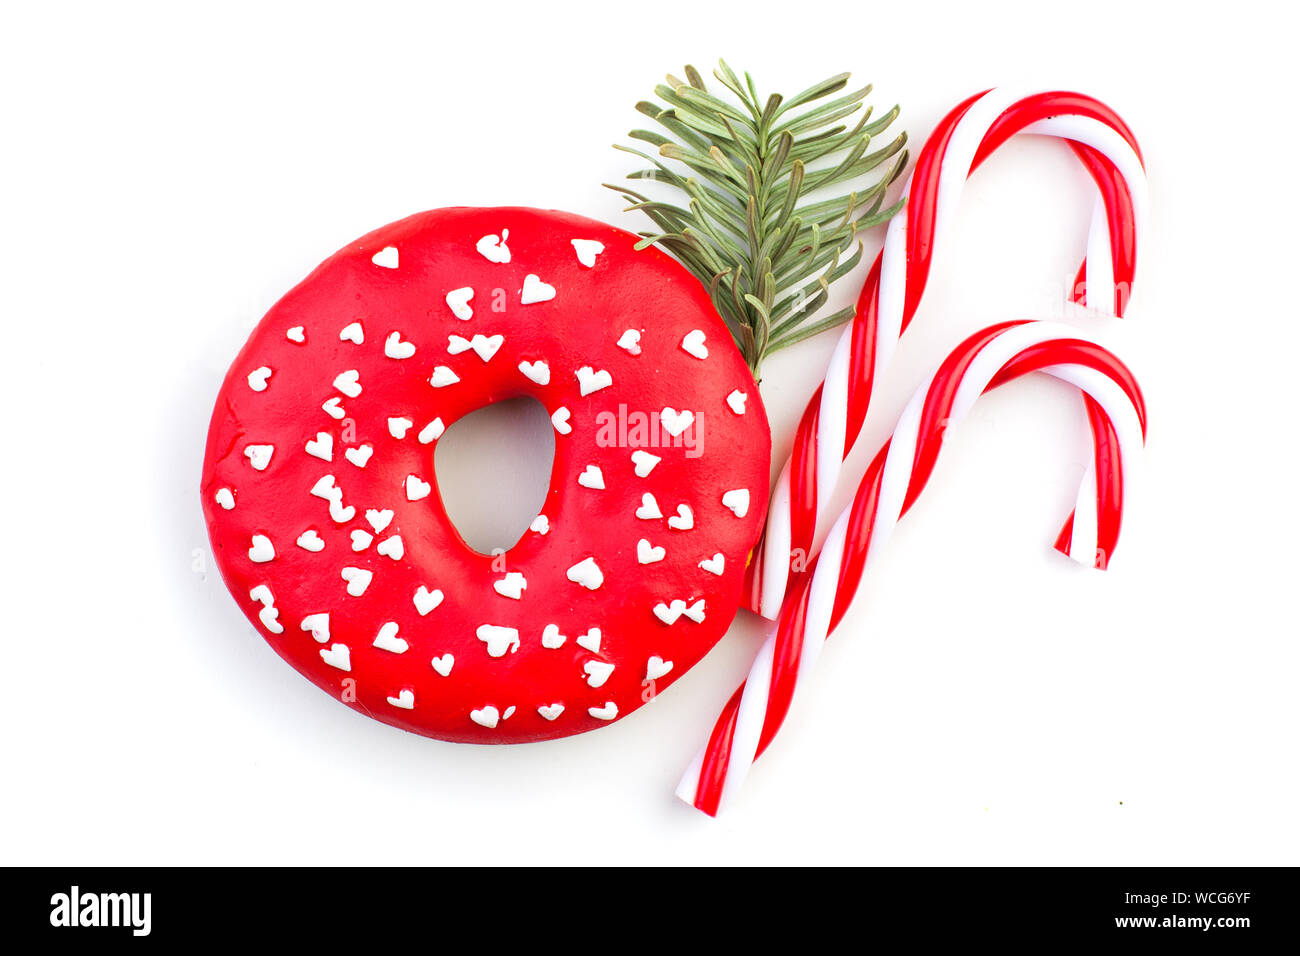 Lollipop Christmas Decorations.Christmas Decorations Red Lollipop And Green Fir Branch On